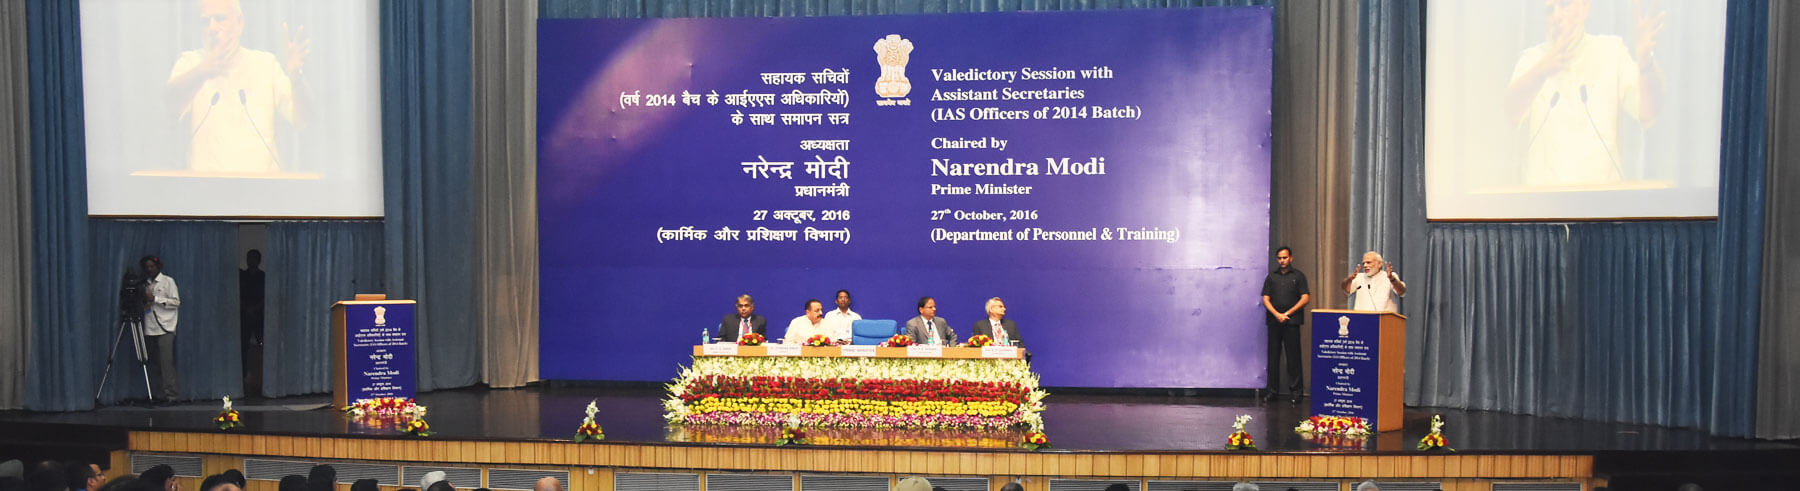 Hon'ble PM addressing valedictory Session of Assistant Secretaries (IAS Officers of 2014 Batch)